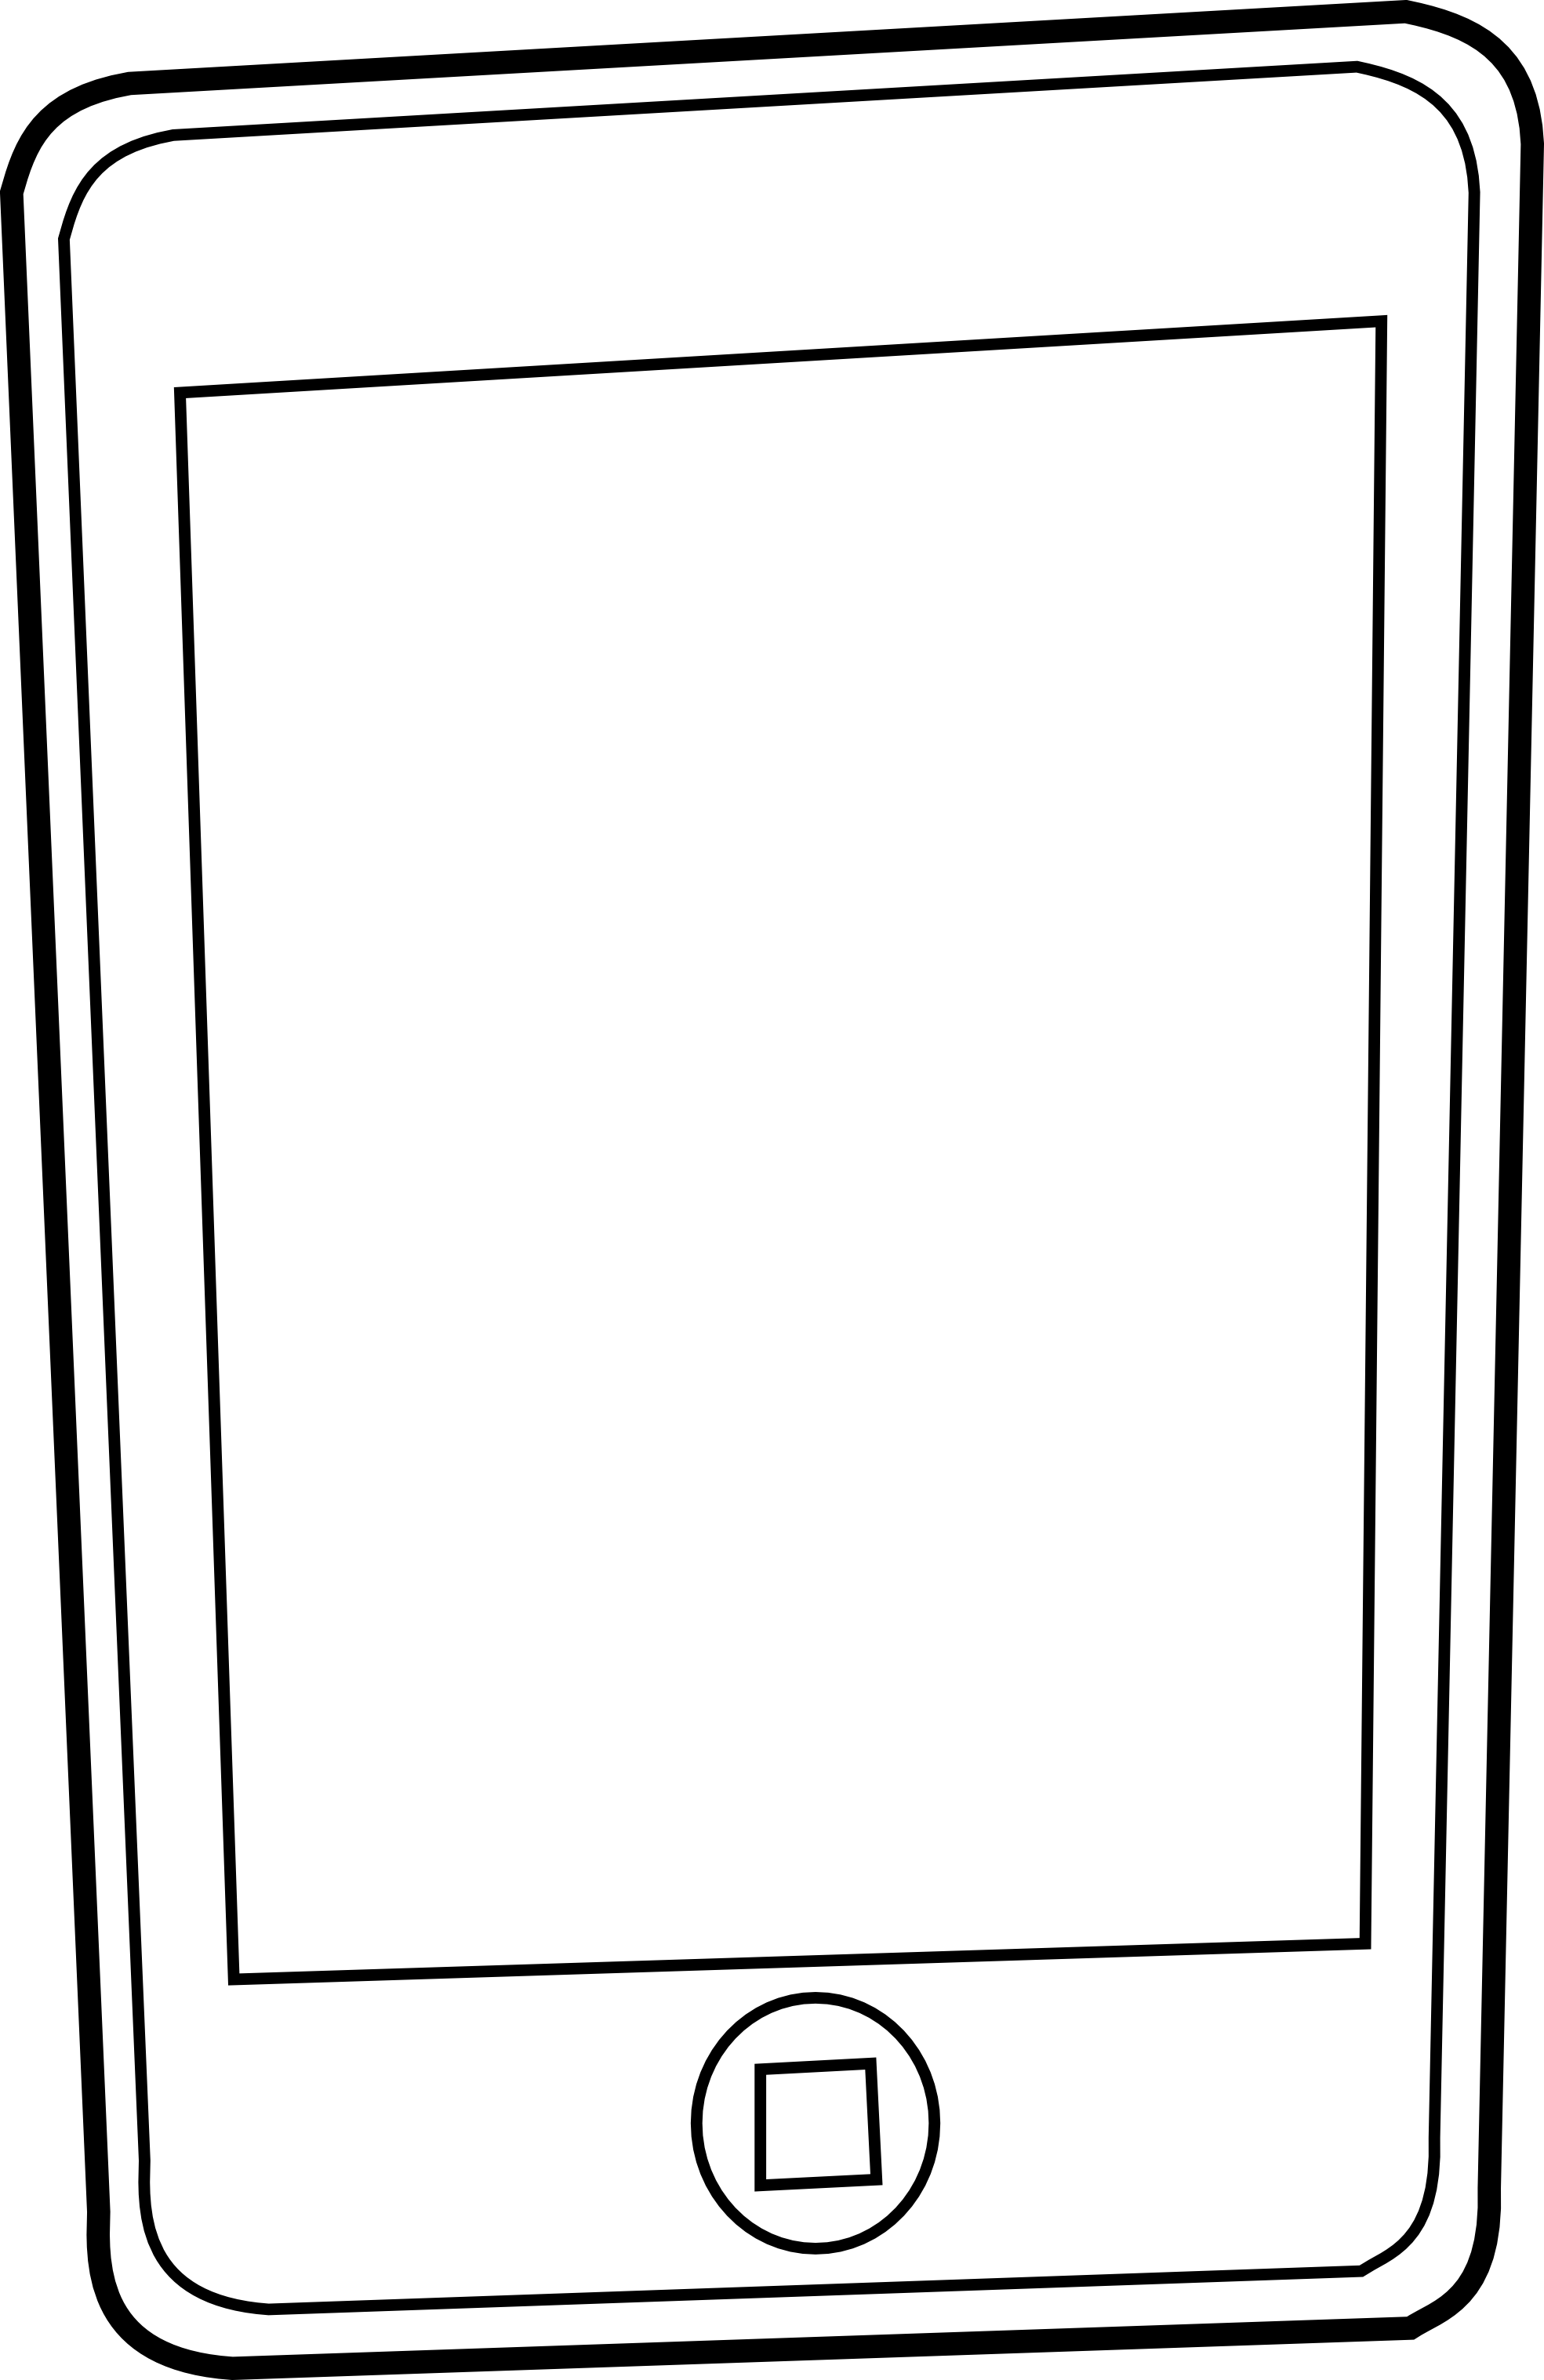 Live clipart for iphone 5c.